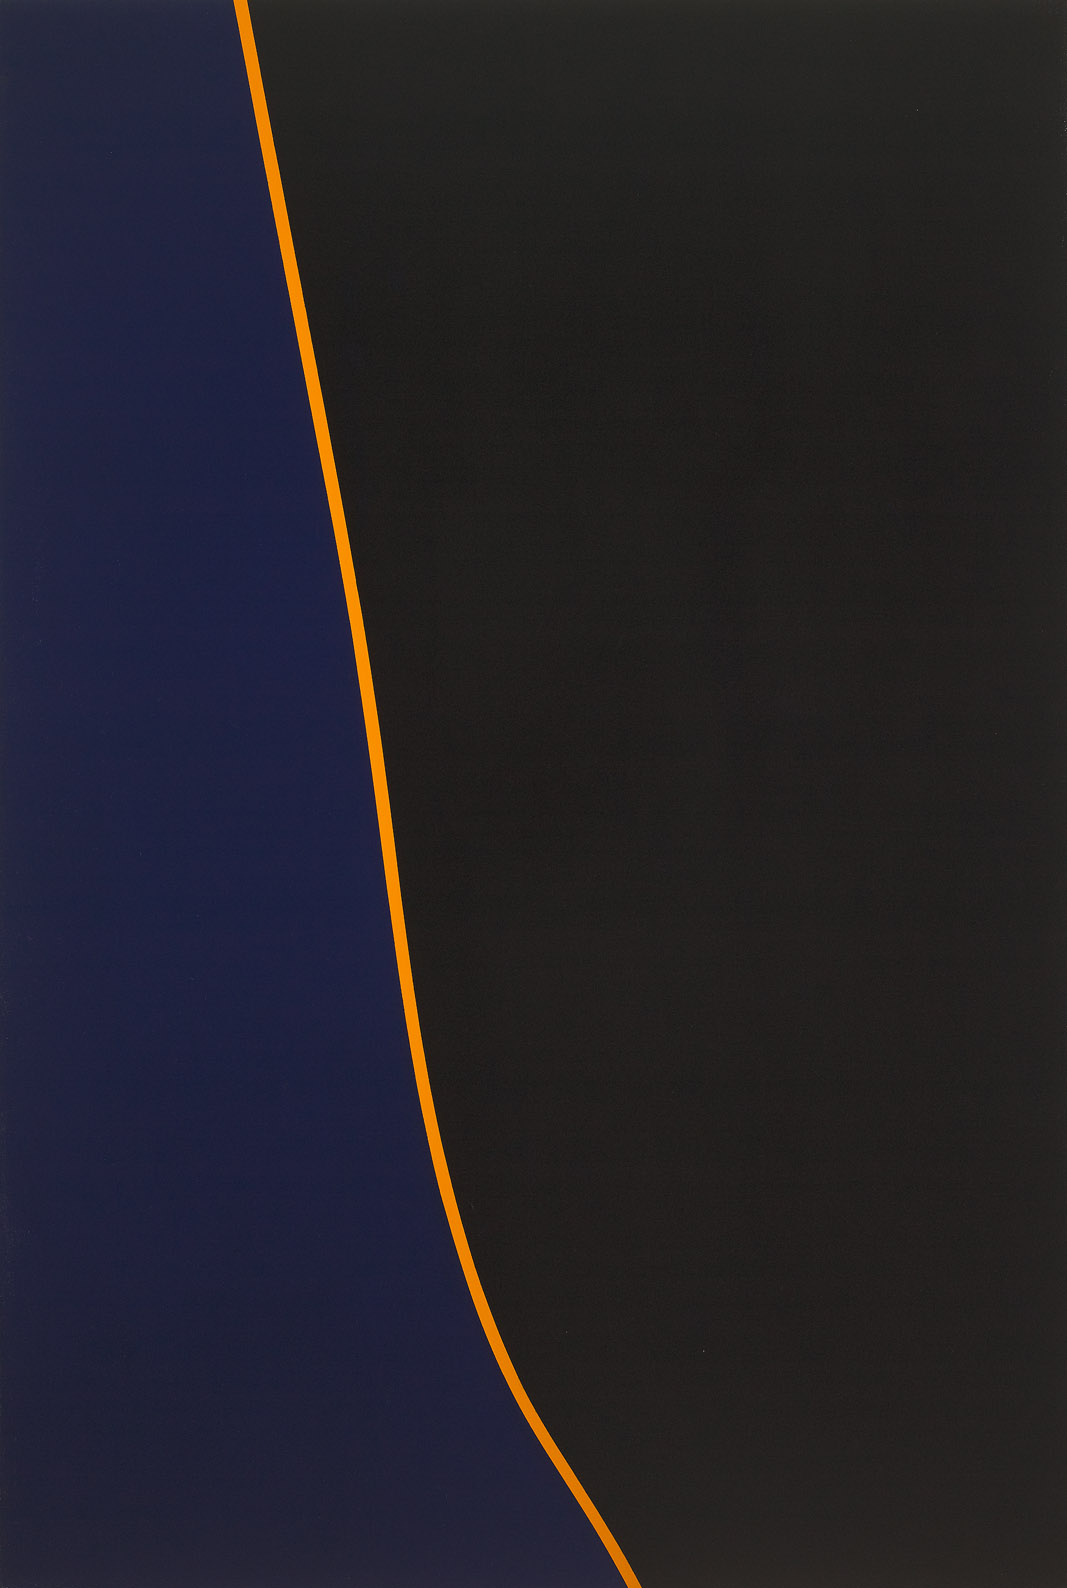 Untitled (March 14) , 1972  acrylic on canvas 60 x 40 inches; 152.4 x 101.6 centimeters